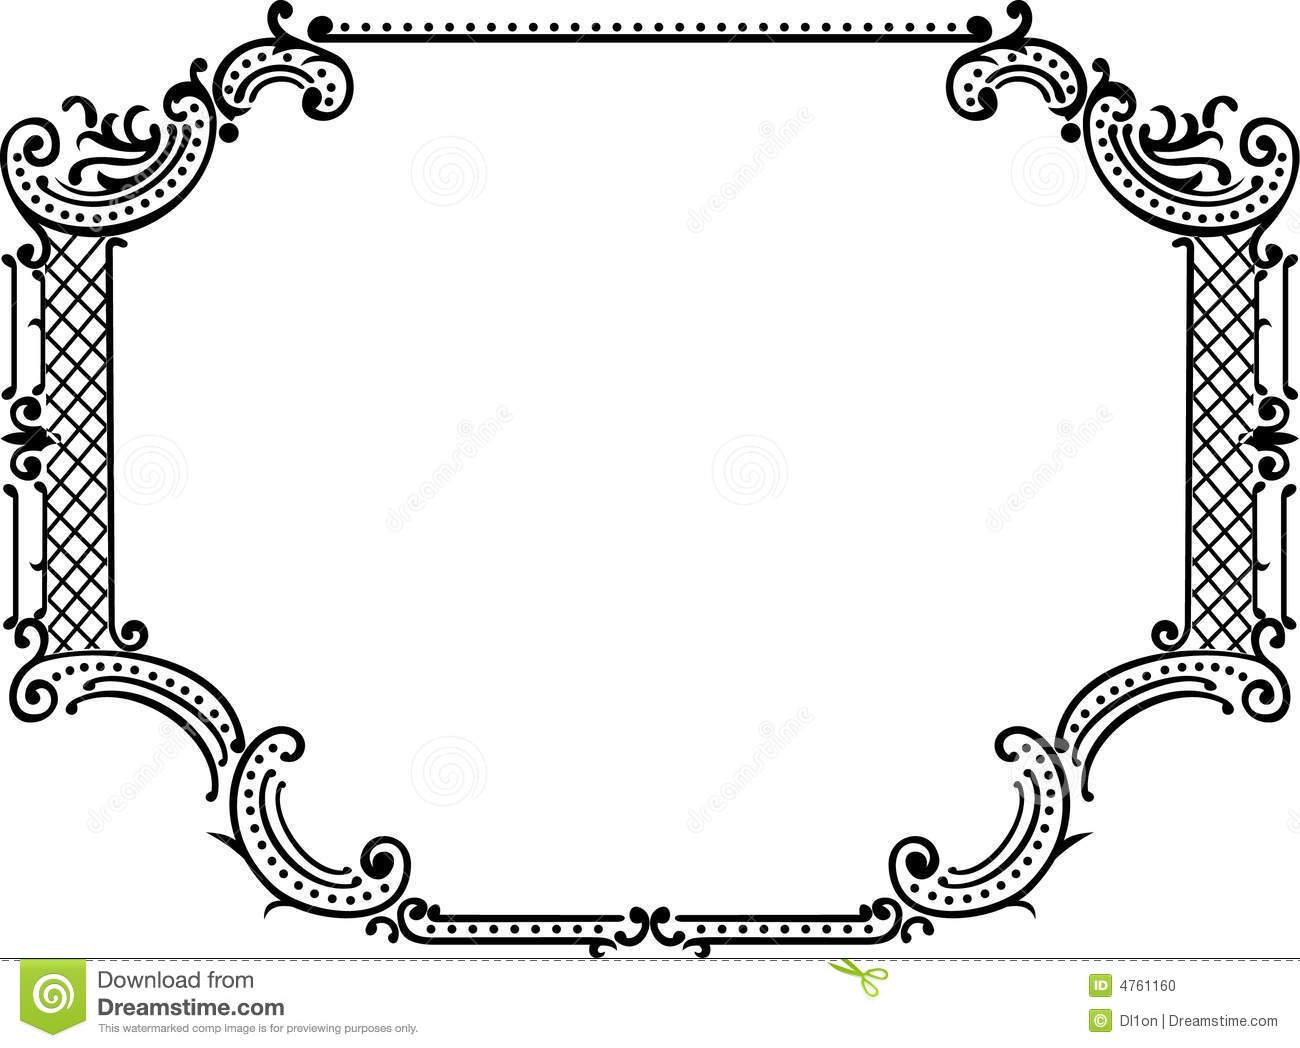 Royal Ornate One Color Frame Stock Vector Illustration Of Graphic